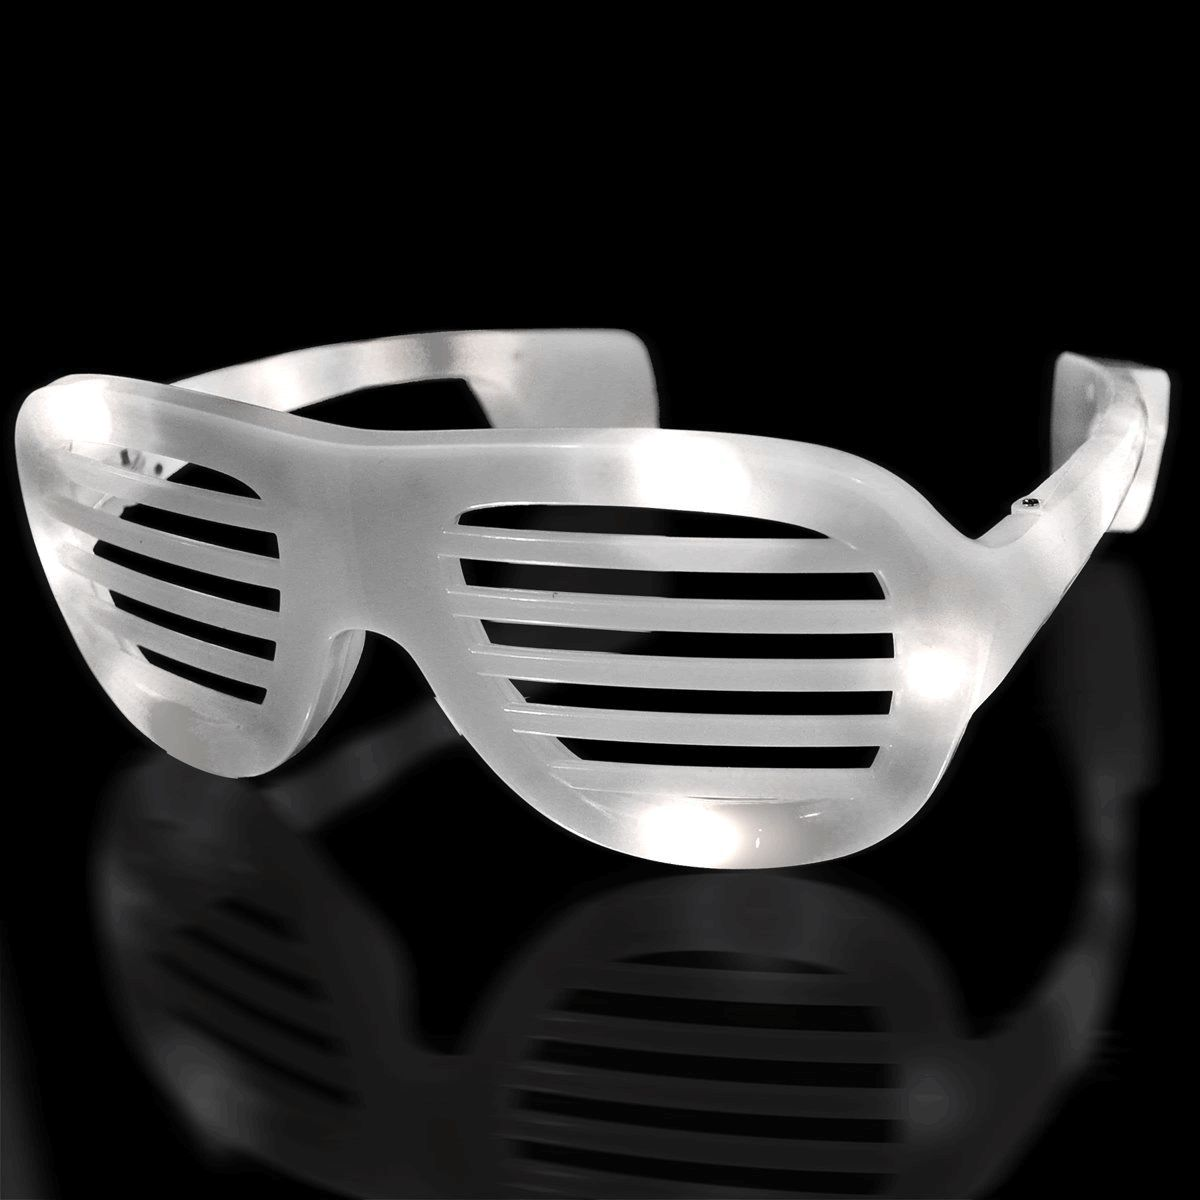 LED Hip Hop SUNGLASSES White by Blinkee